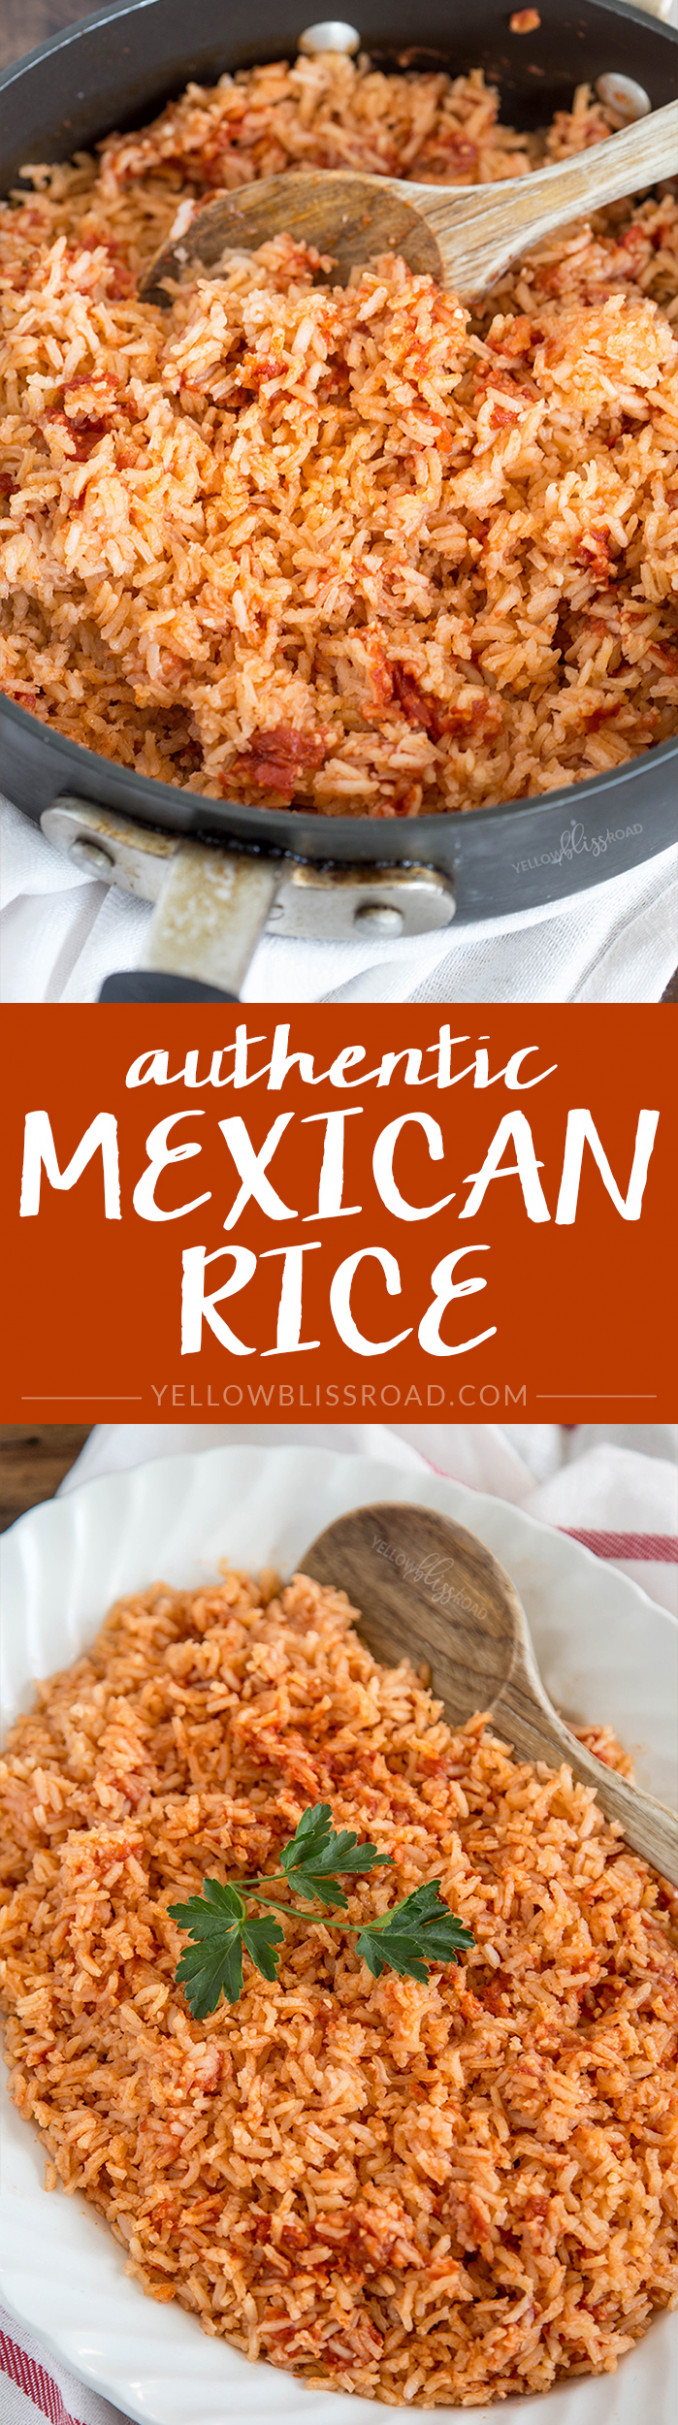 Authentic Mexican Rice - recipes authentic mexican food